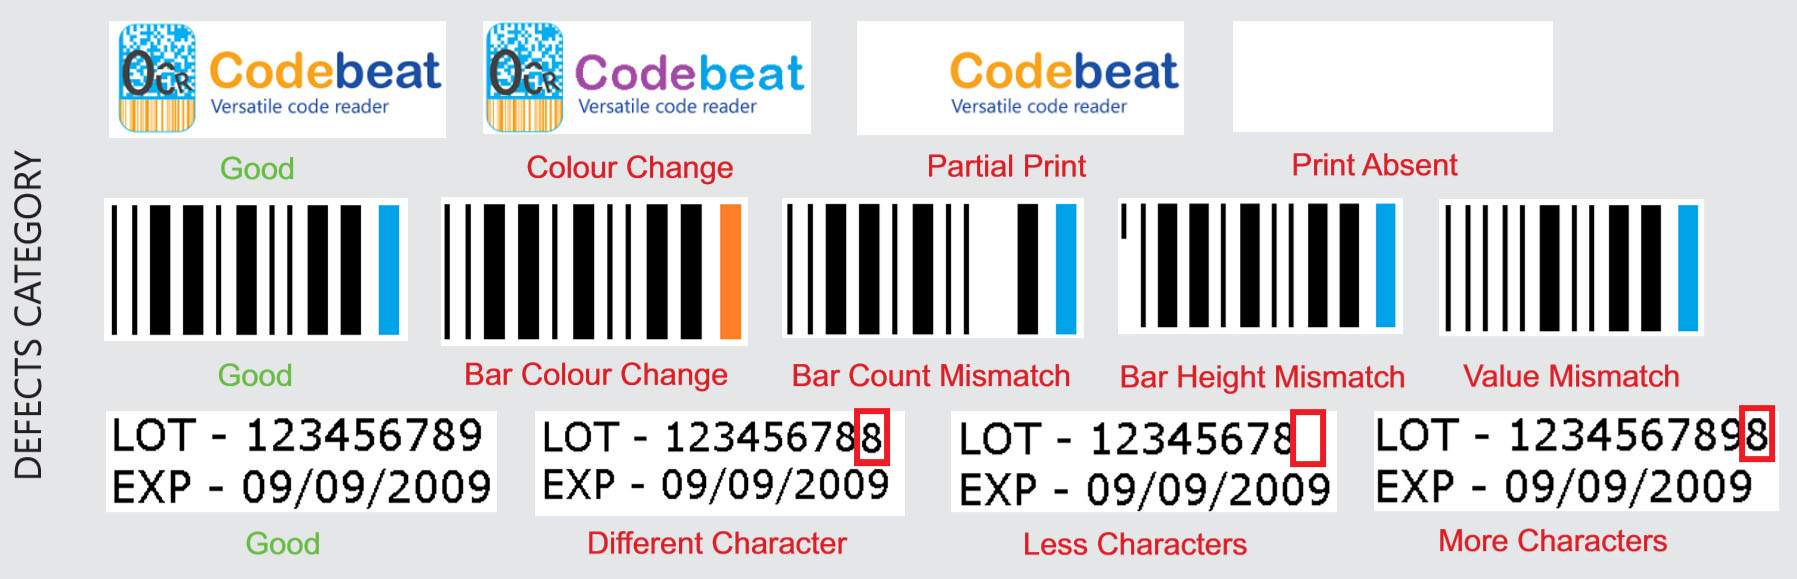 Codebeat defects category